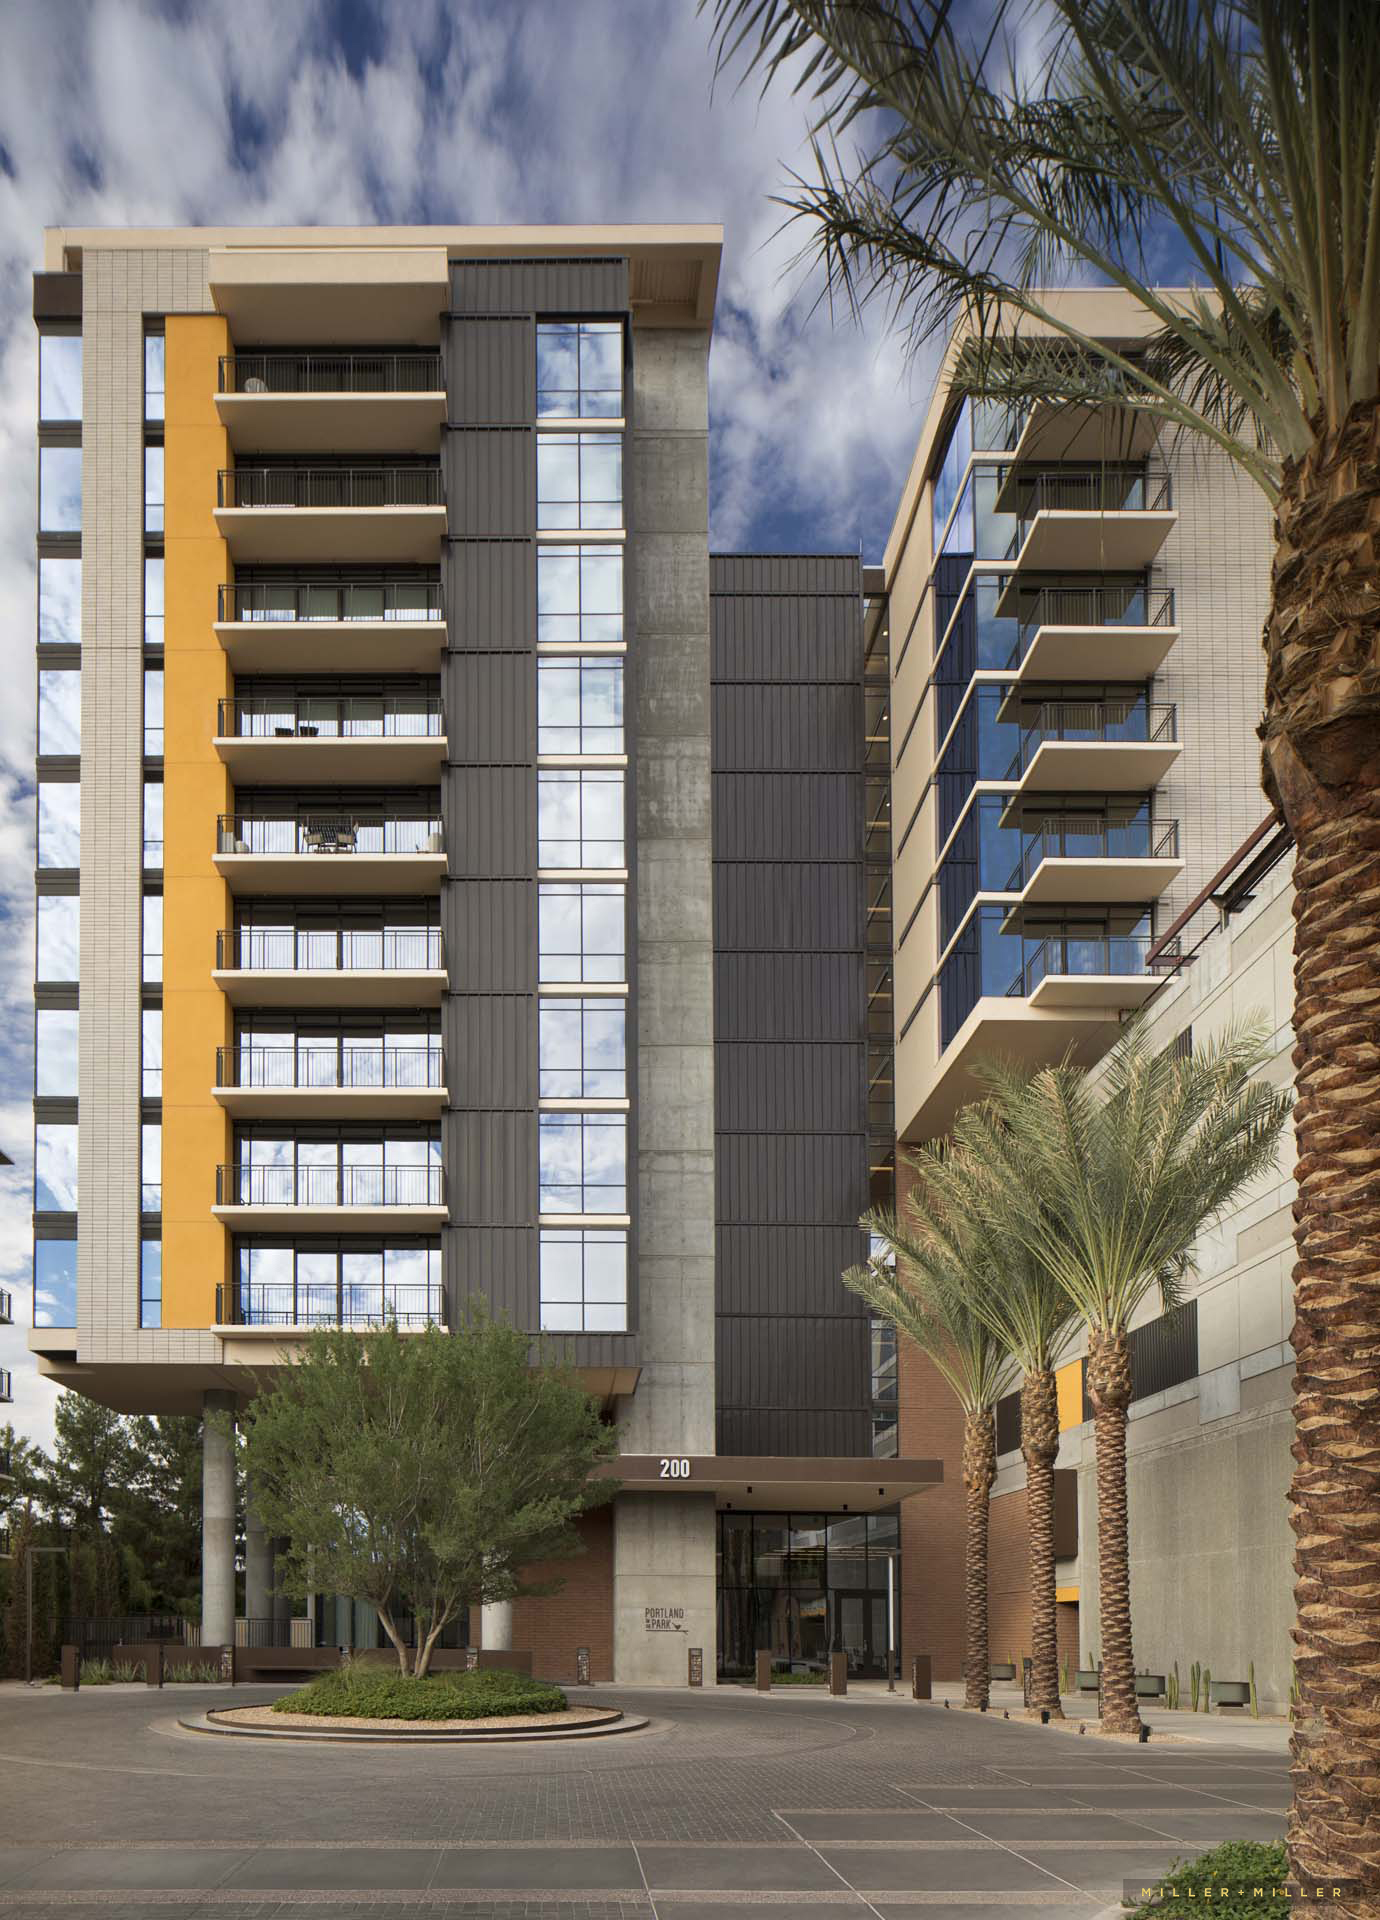 luxury urban resort-style development Arizona photography